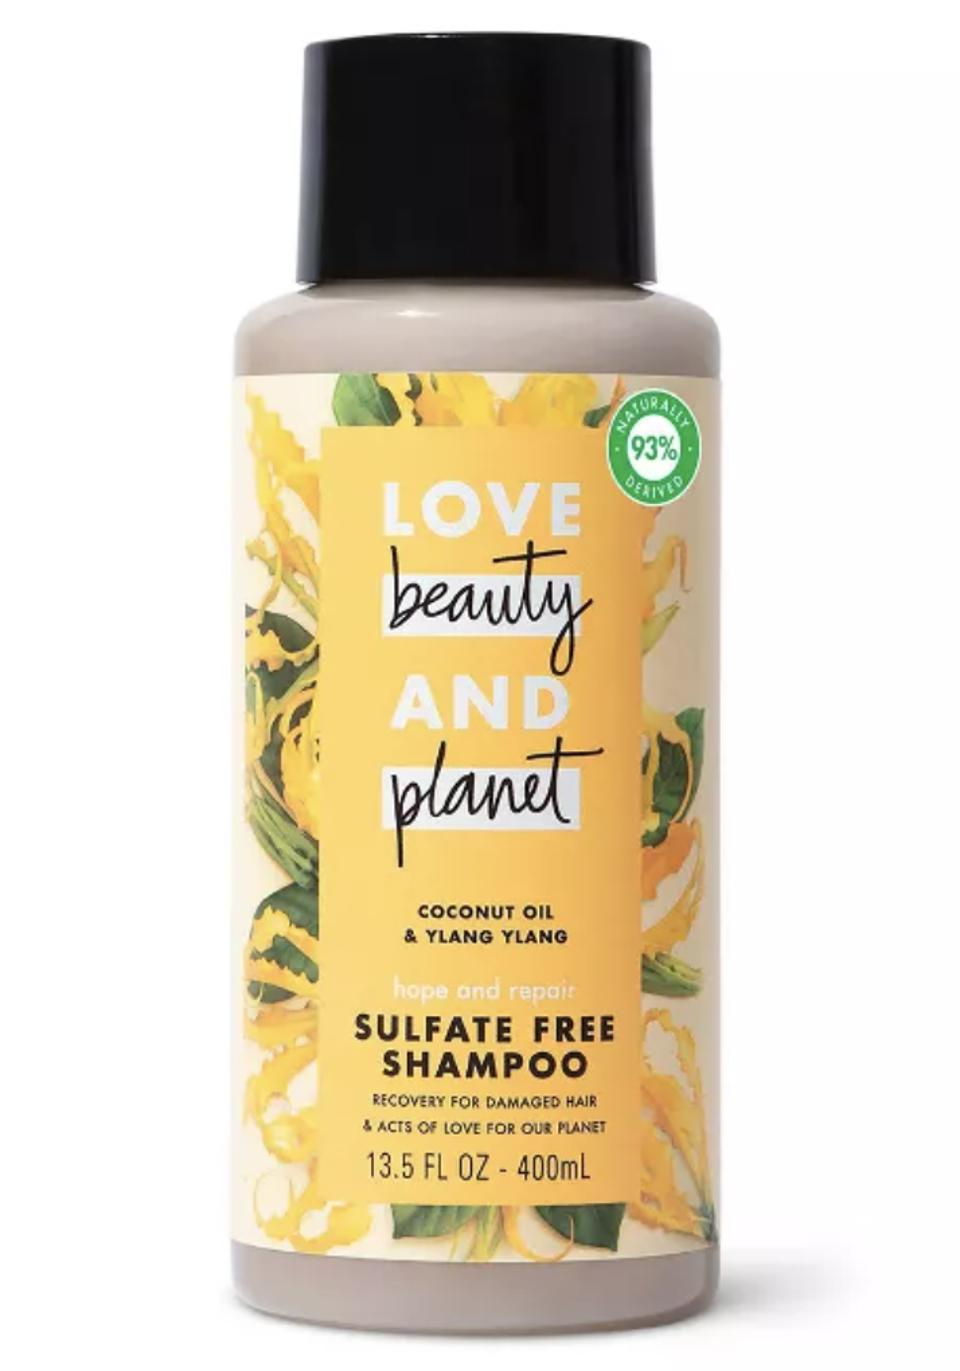 Love Beauty and Planet Hope and Hair Repair Sulfate-Free Shampoo